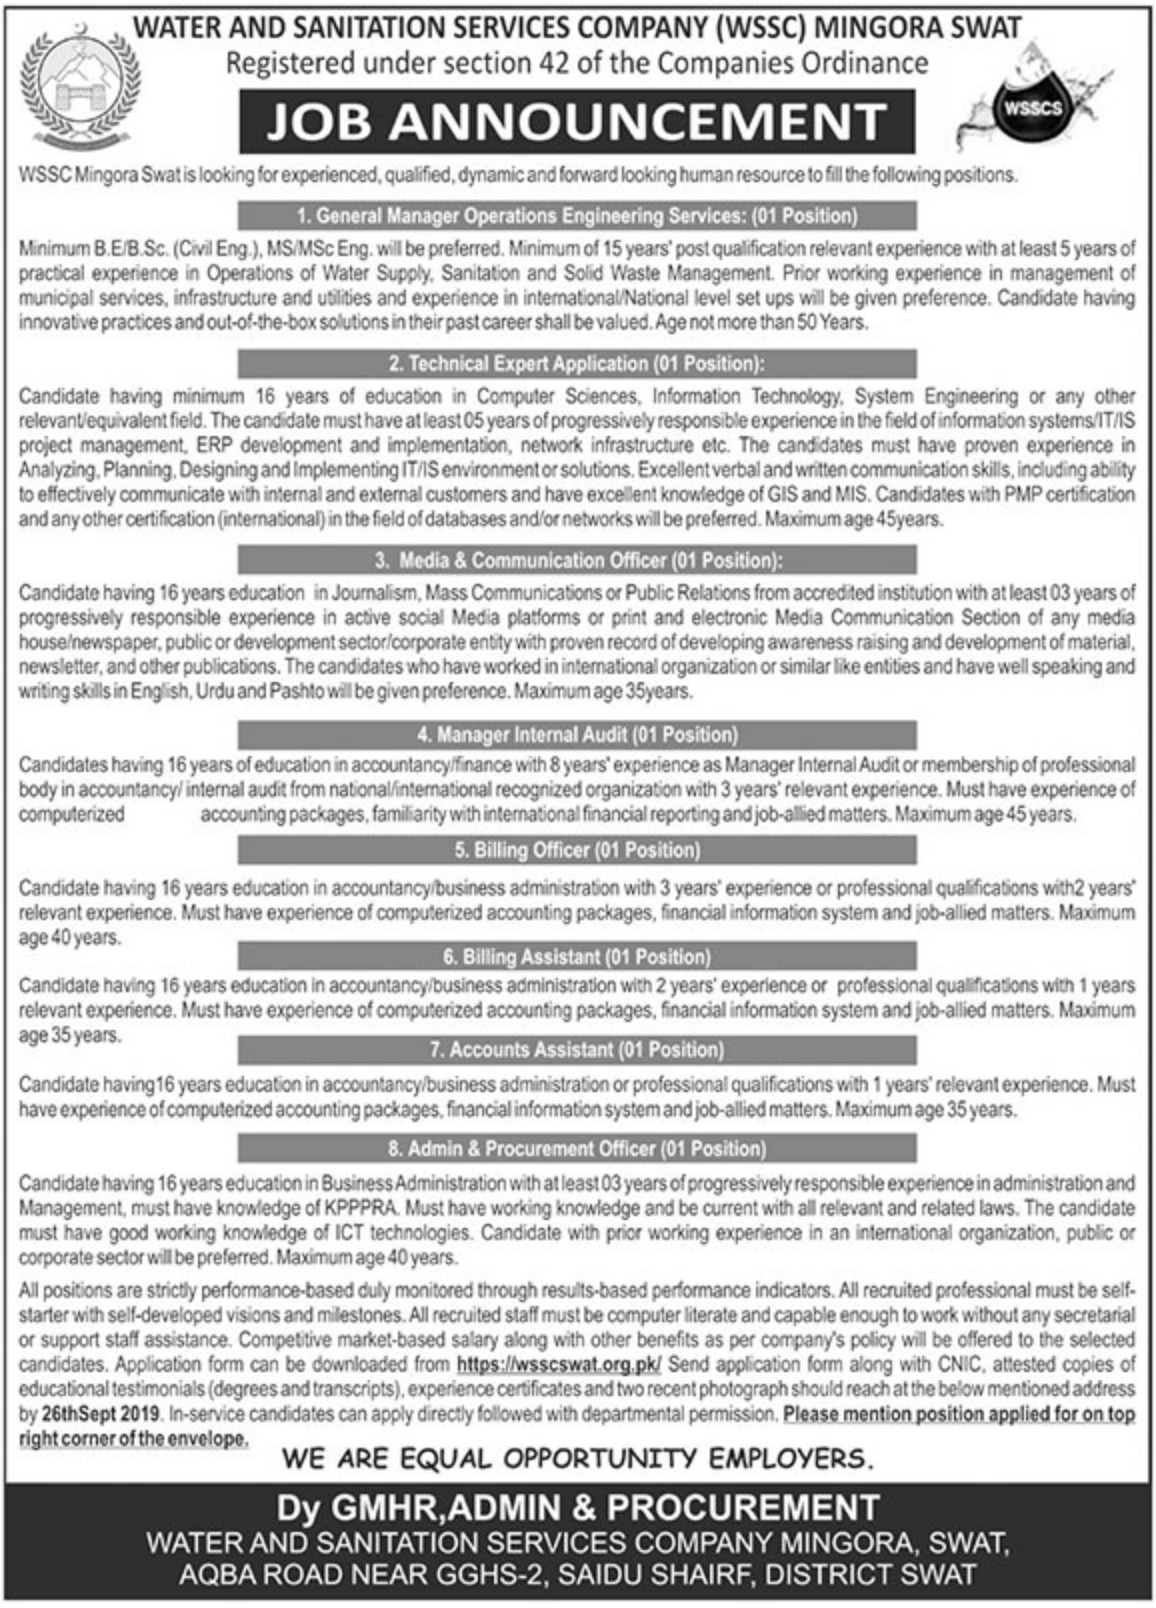 Water and Sanitation Services Company WSSC Mingora Swat Jobs 2019 Application Form